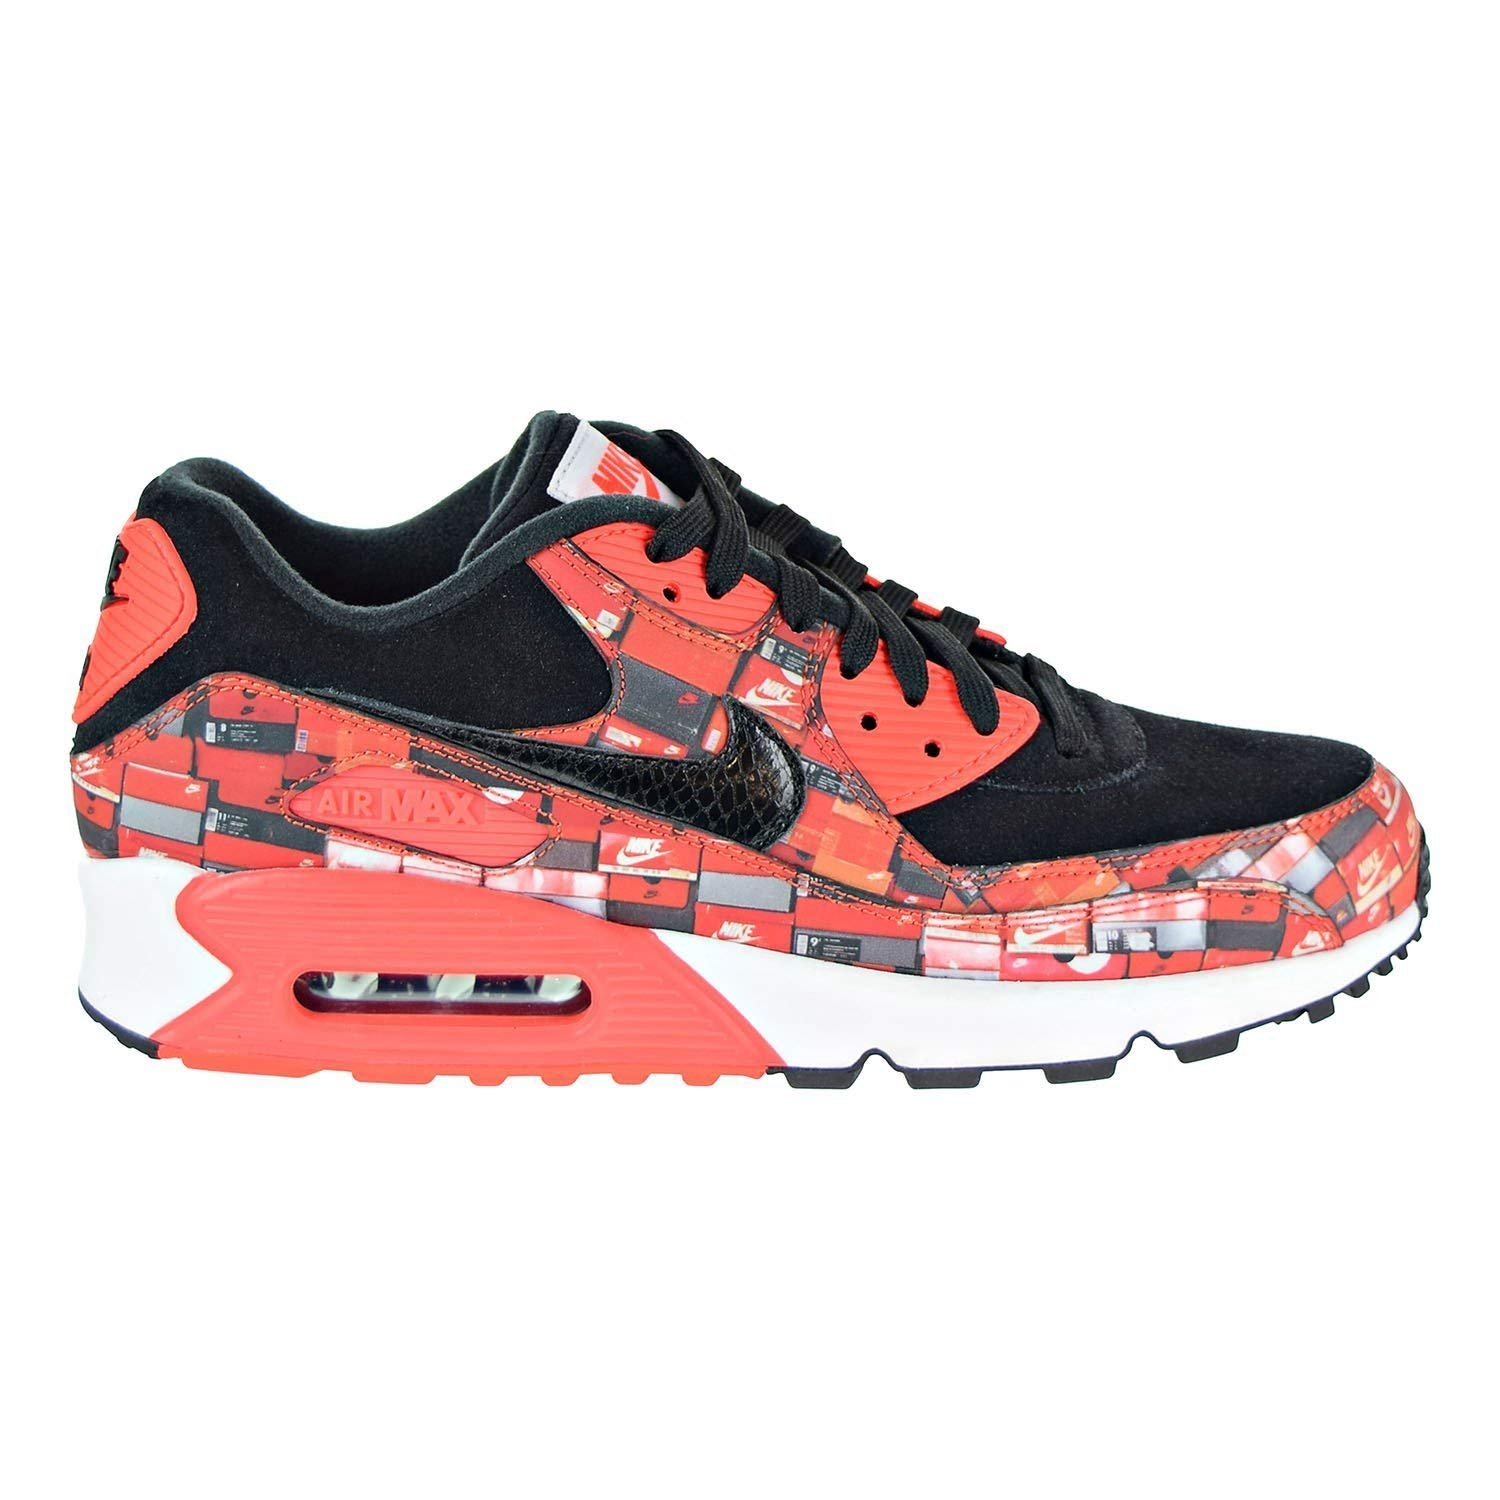 Nike Air Max 90 Atmos We Love Nike Size 11.5